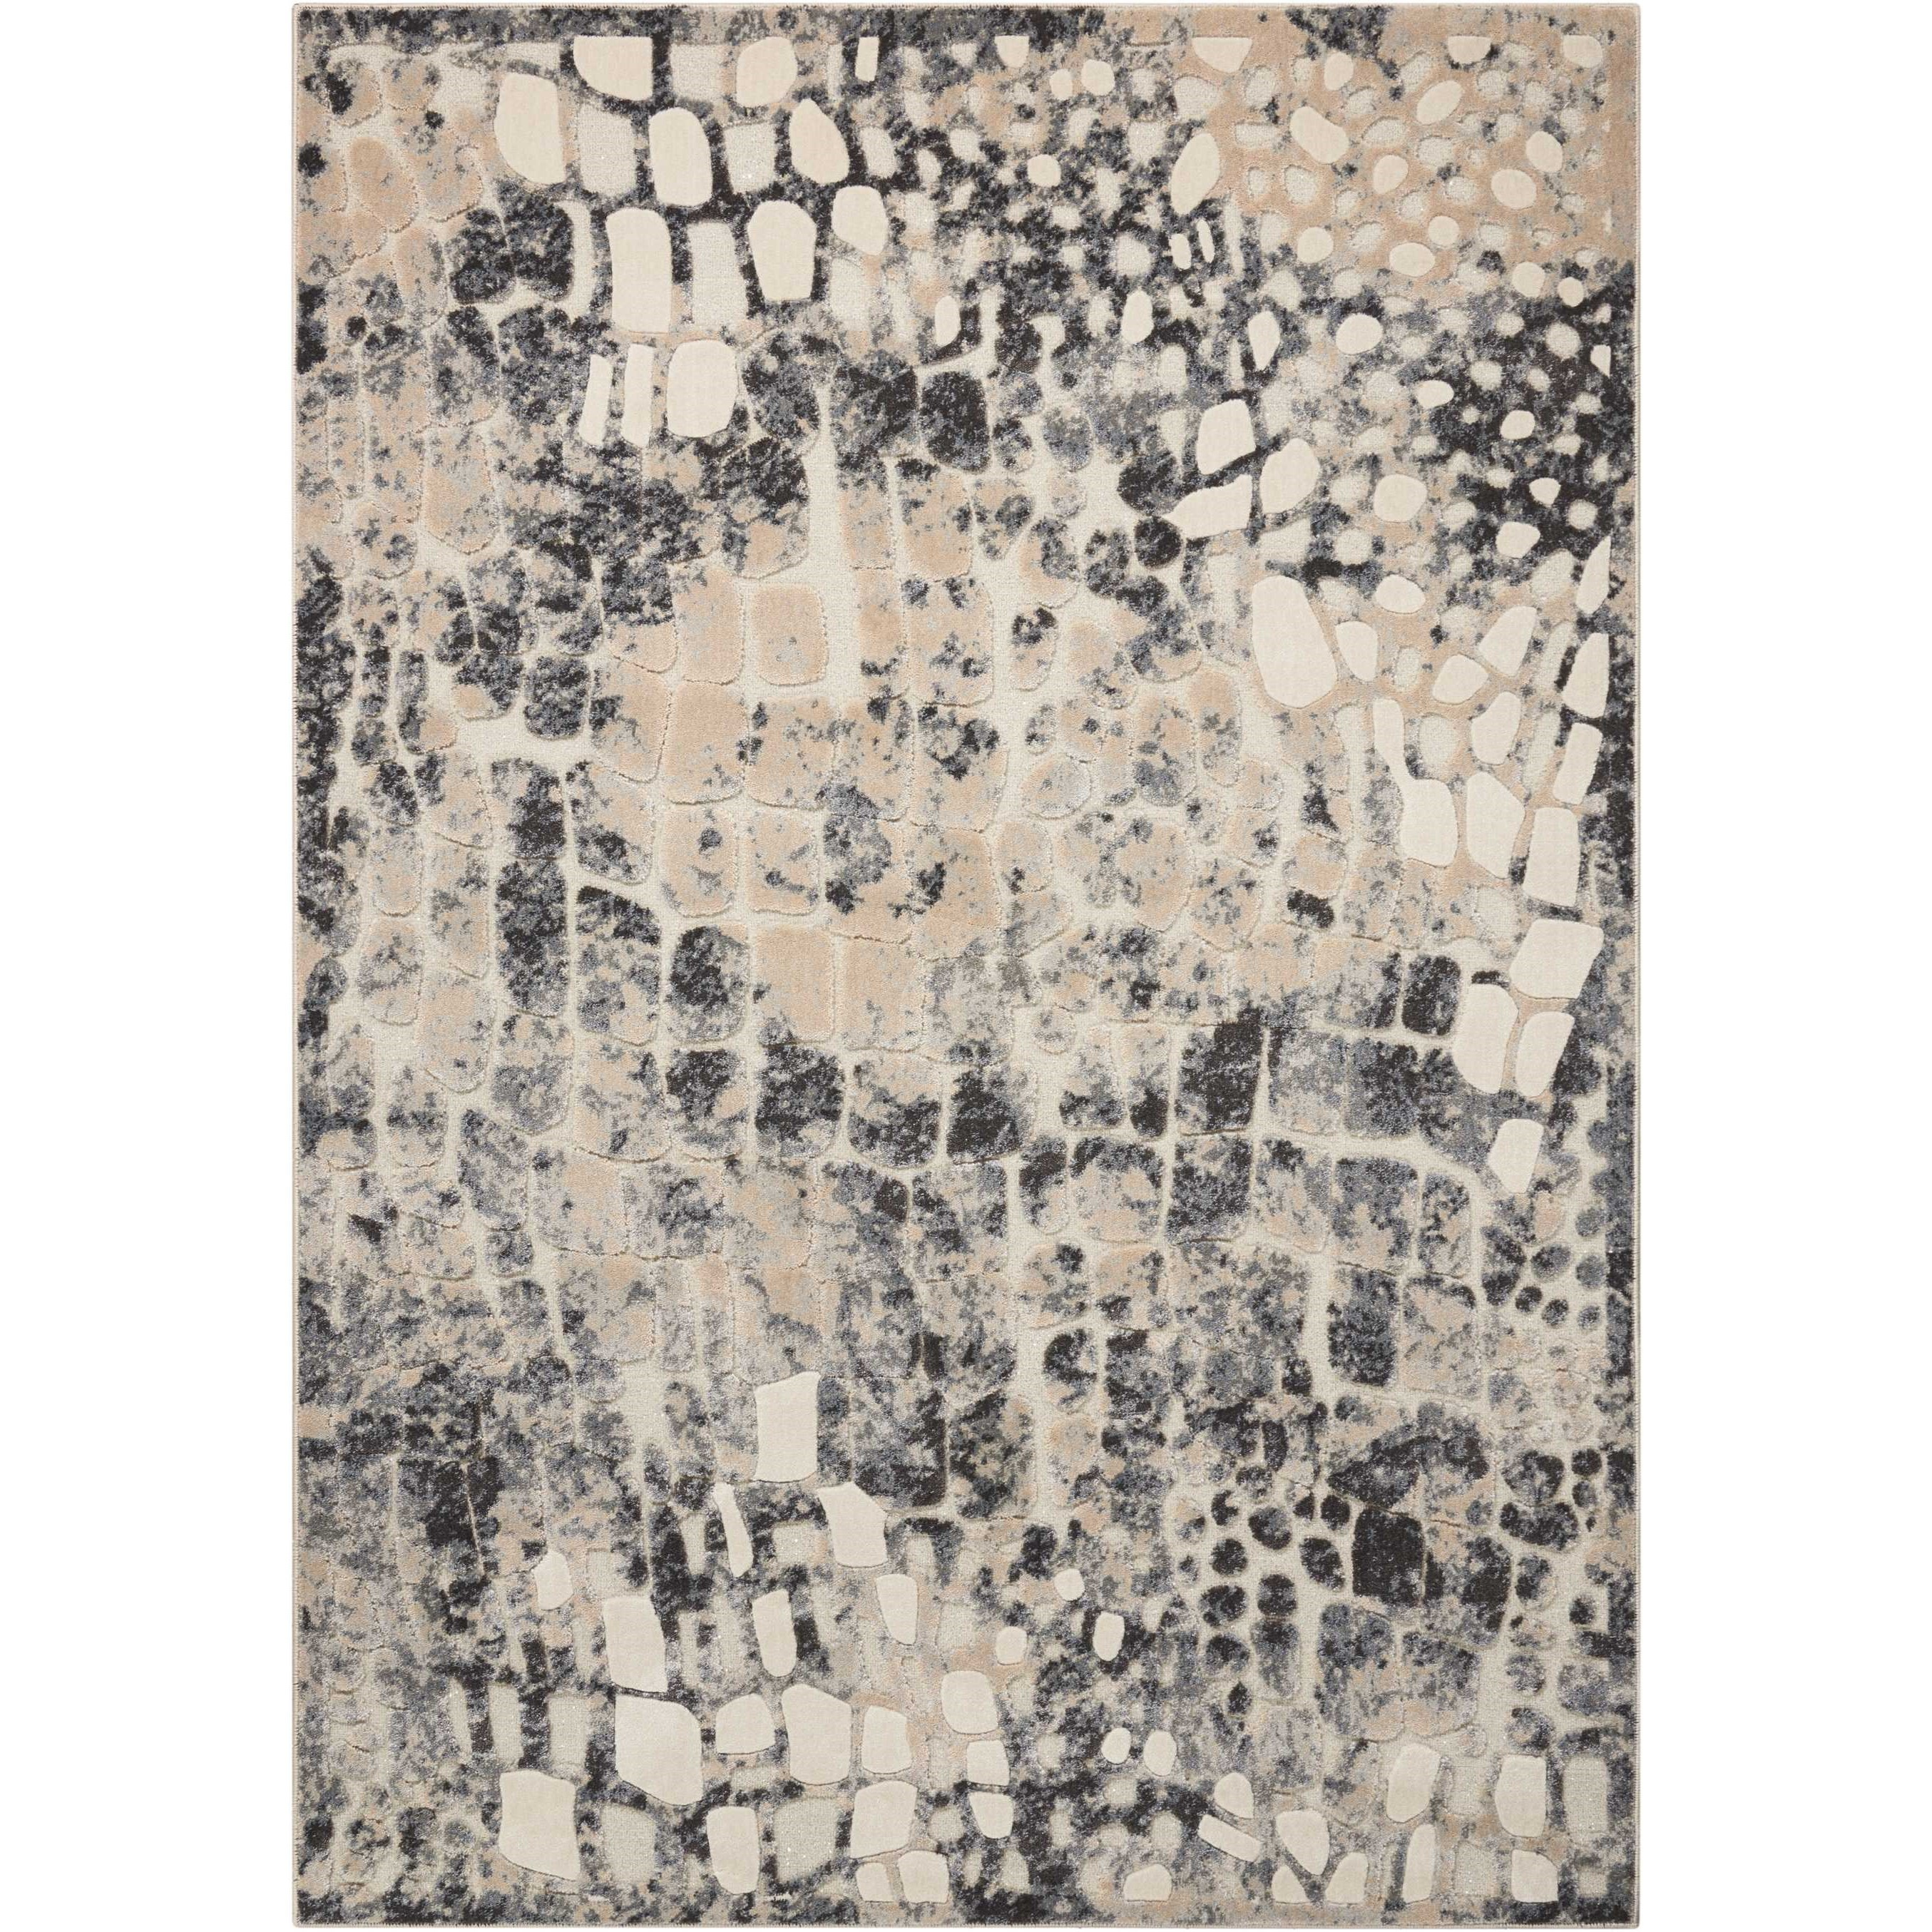 """Gleam 7'10"""" x 10'6"""" Rug by Michael Amini by Nourison at Home Collections Furniture"""